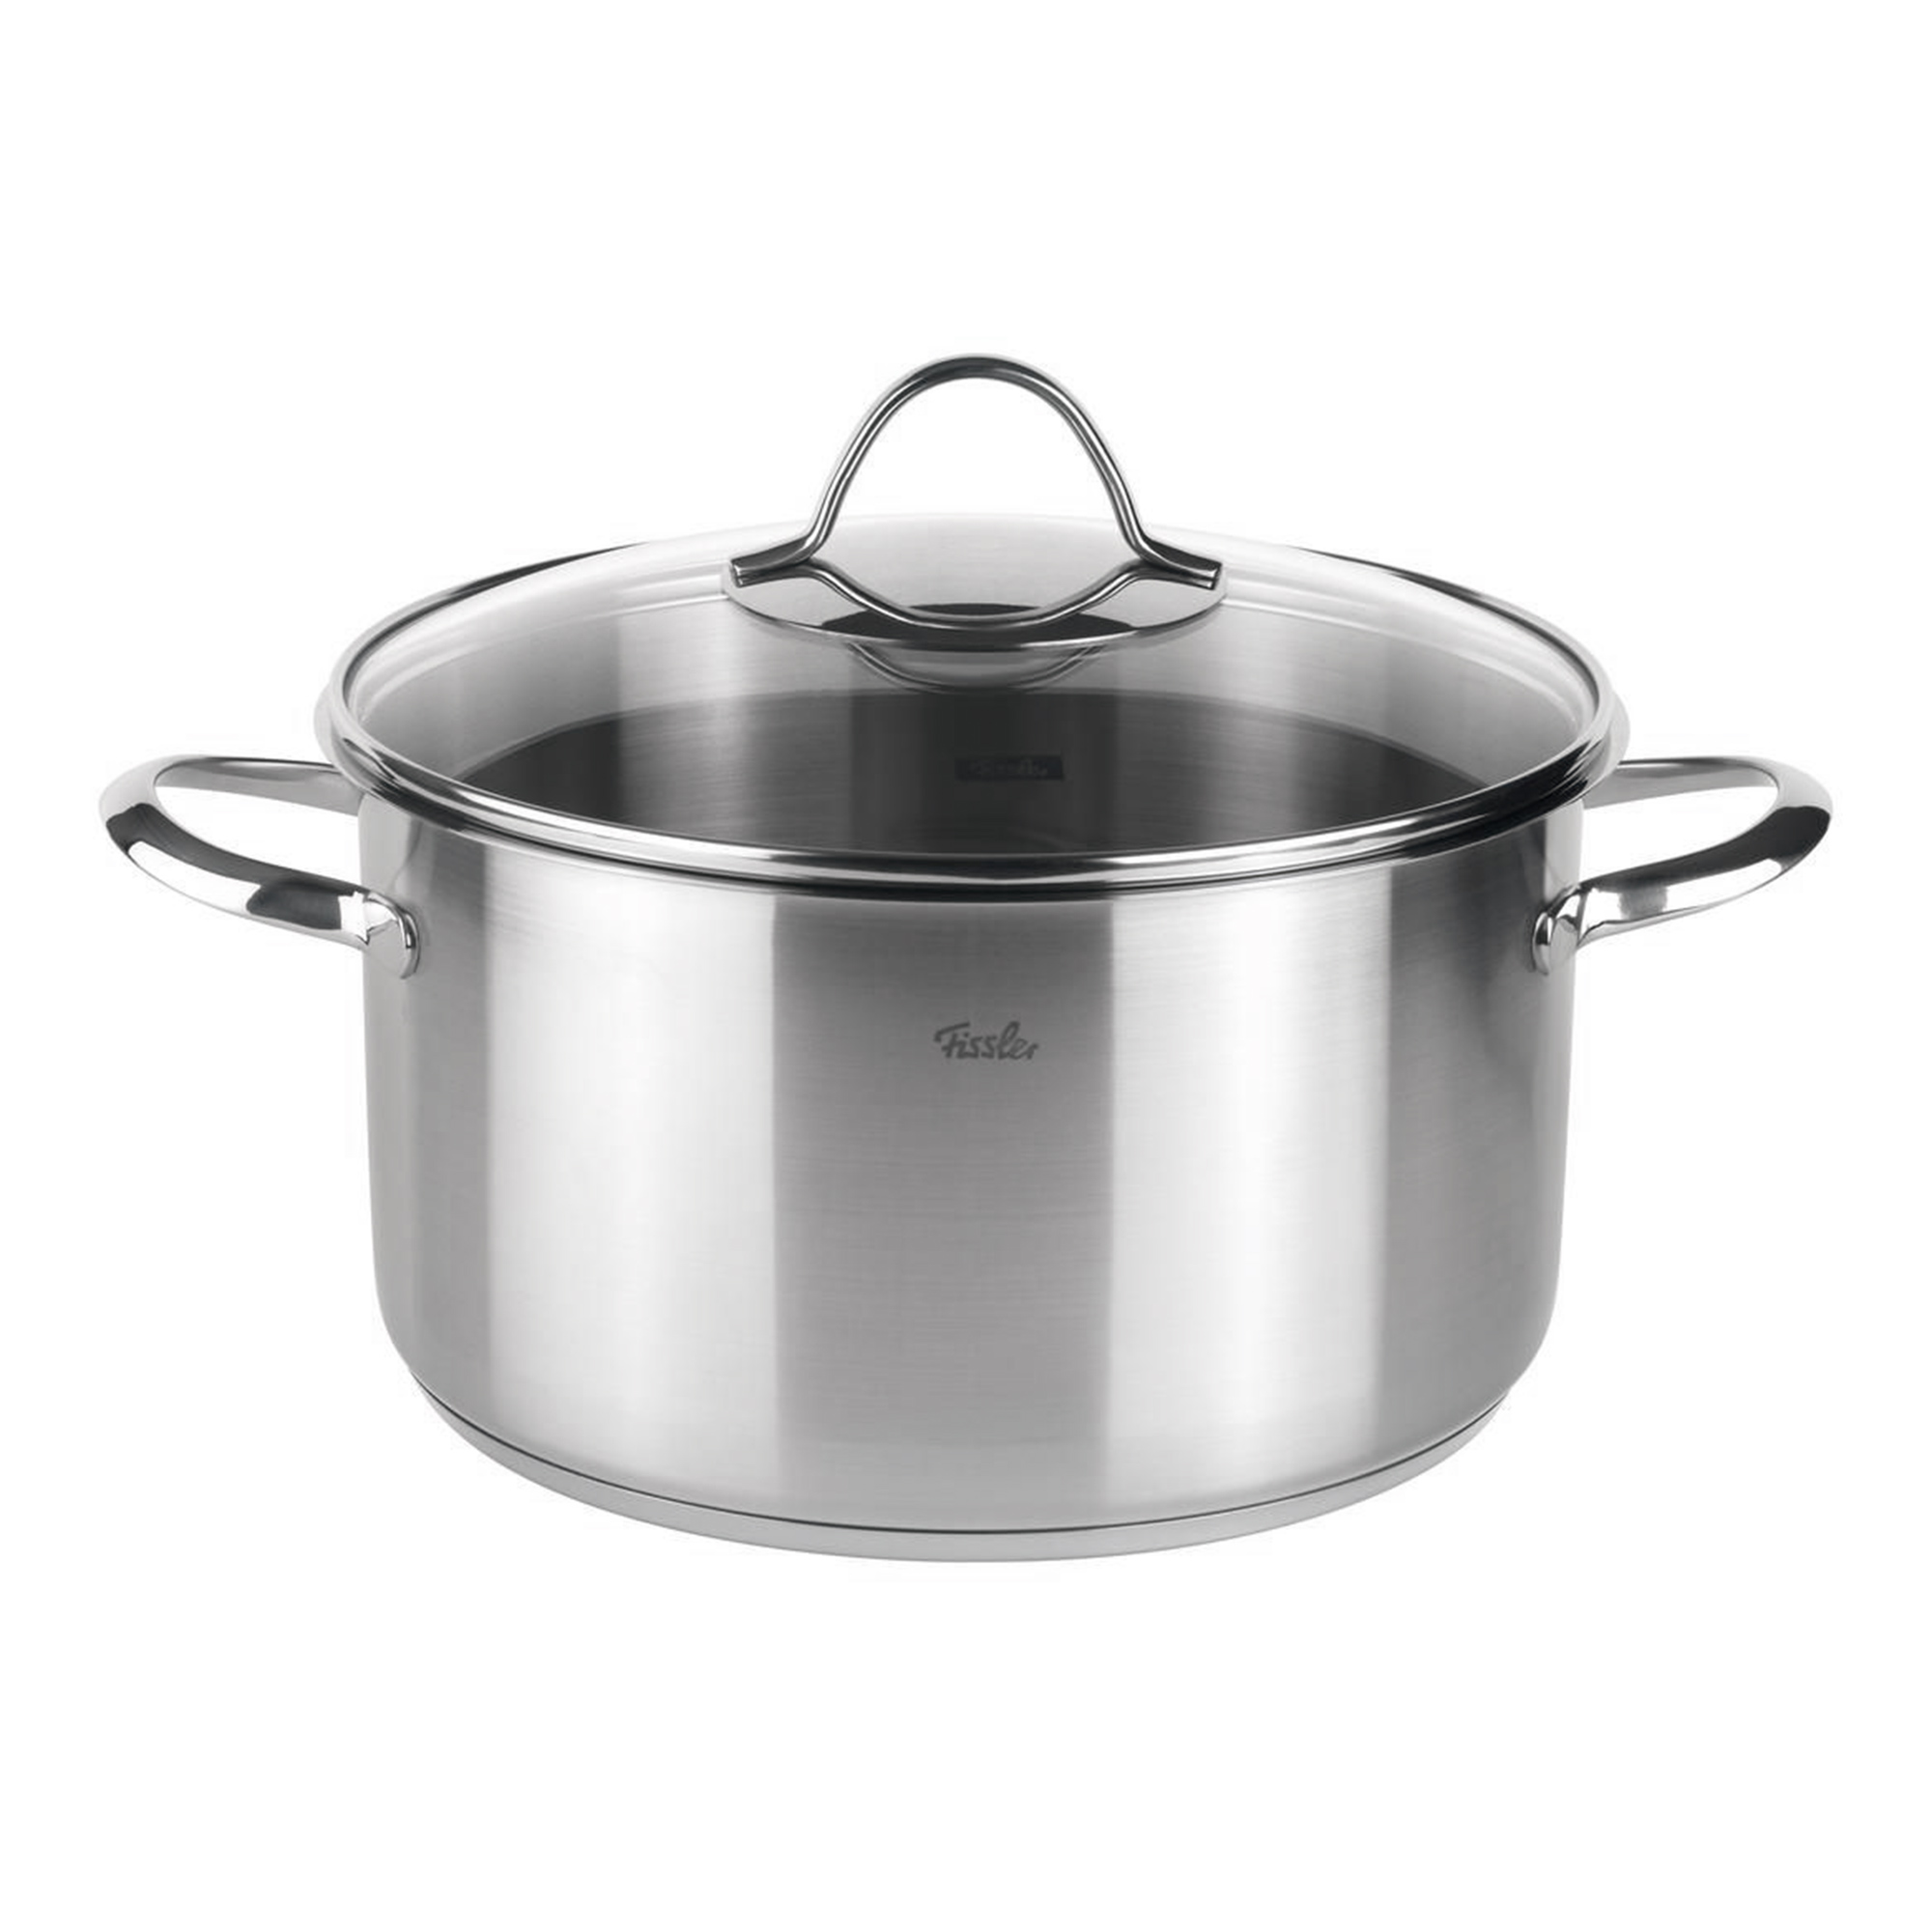 Купить Кастрюля Fissler Paris 24 см 5, 7 л, Серебристый